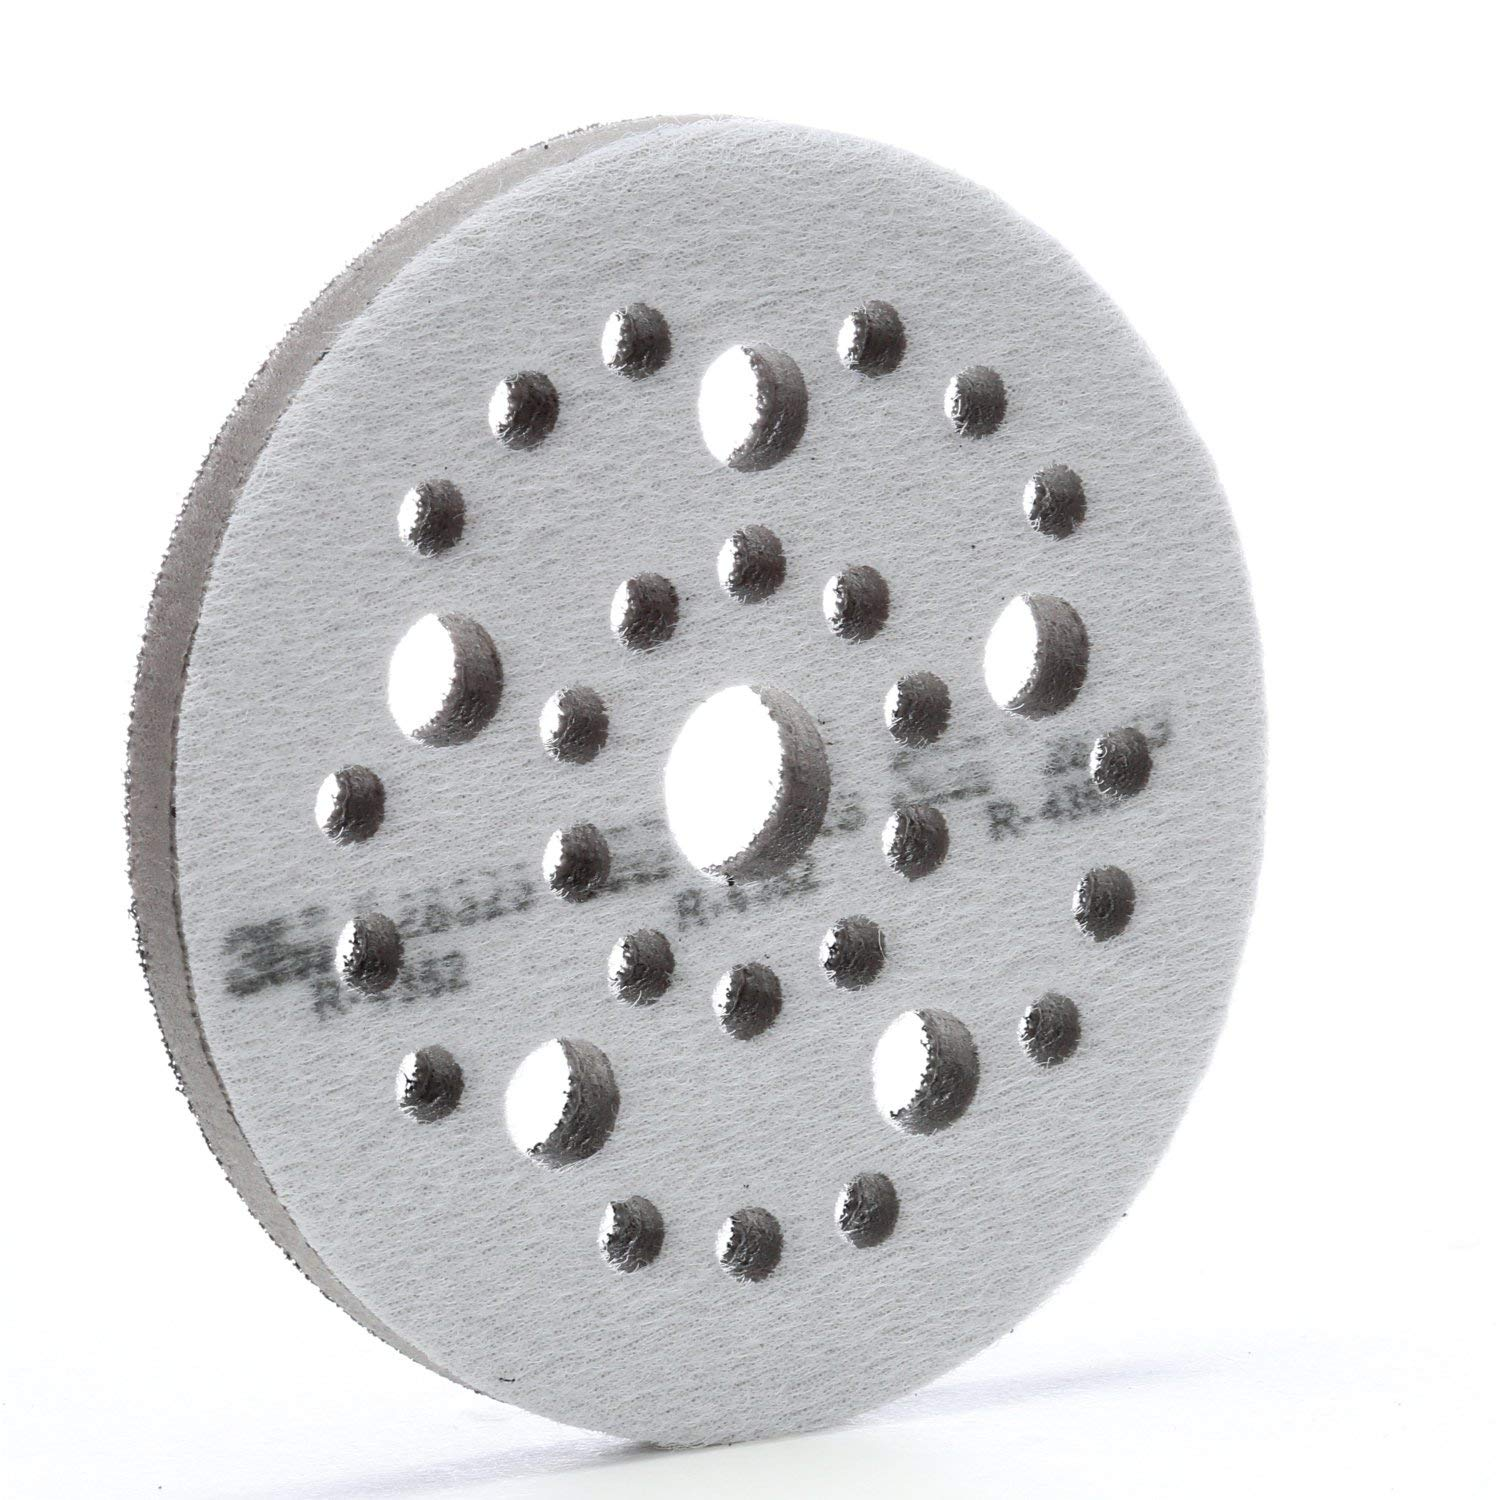 Pack of 1 3M Clean Sanding Soft Interface Disc Pad 28321 Hook and Loop 5 Diameter x 0.50 Thick